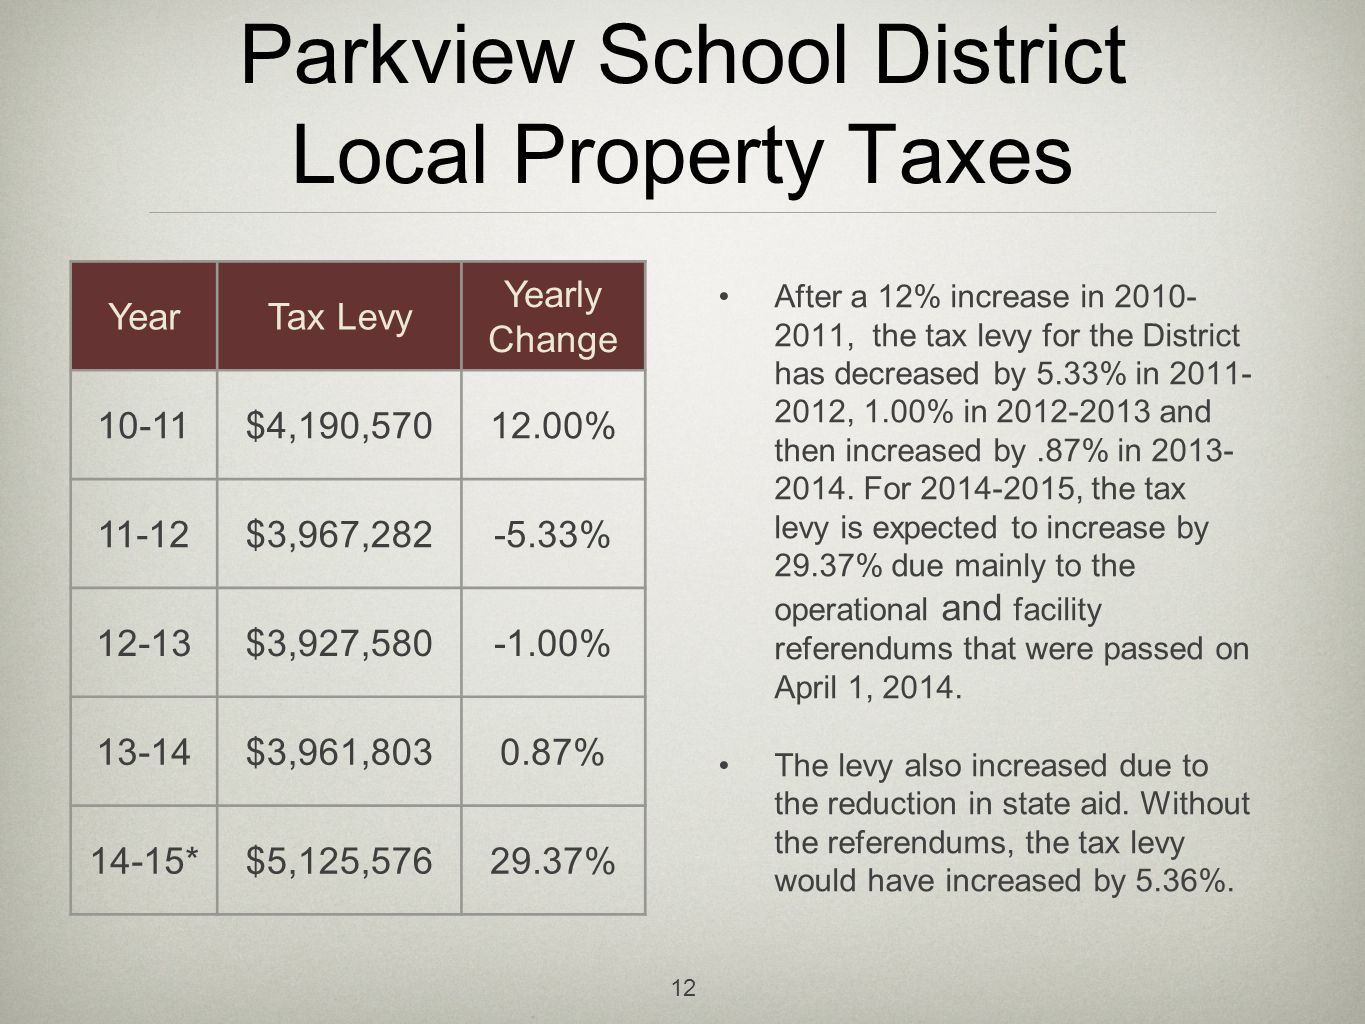 Parkview School District Local Property Taxes After a 12% increase in 2010- 2011, the tax levy for the District has decreased by 5.33% in 2011- 2012, 1.00% in 2012-2013 and then increased by.87% in 2013- 2014.